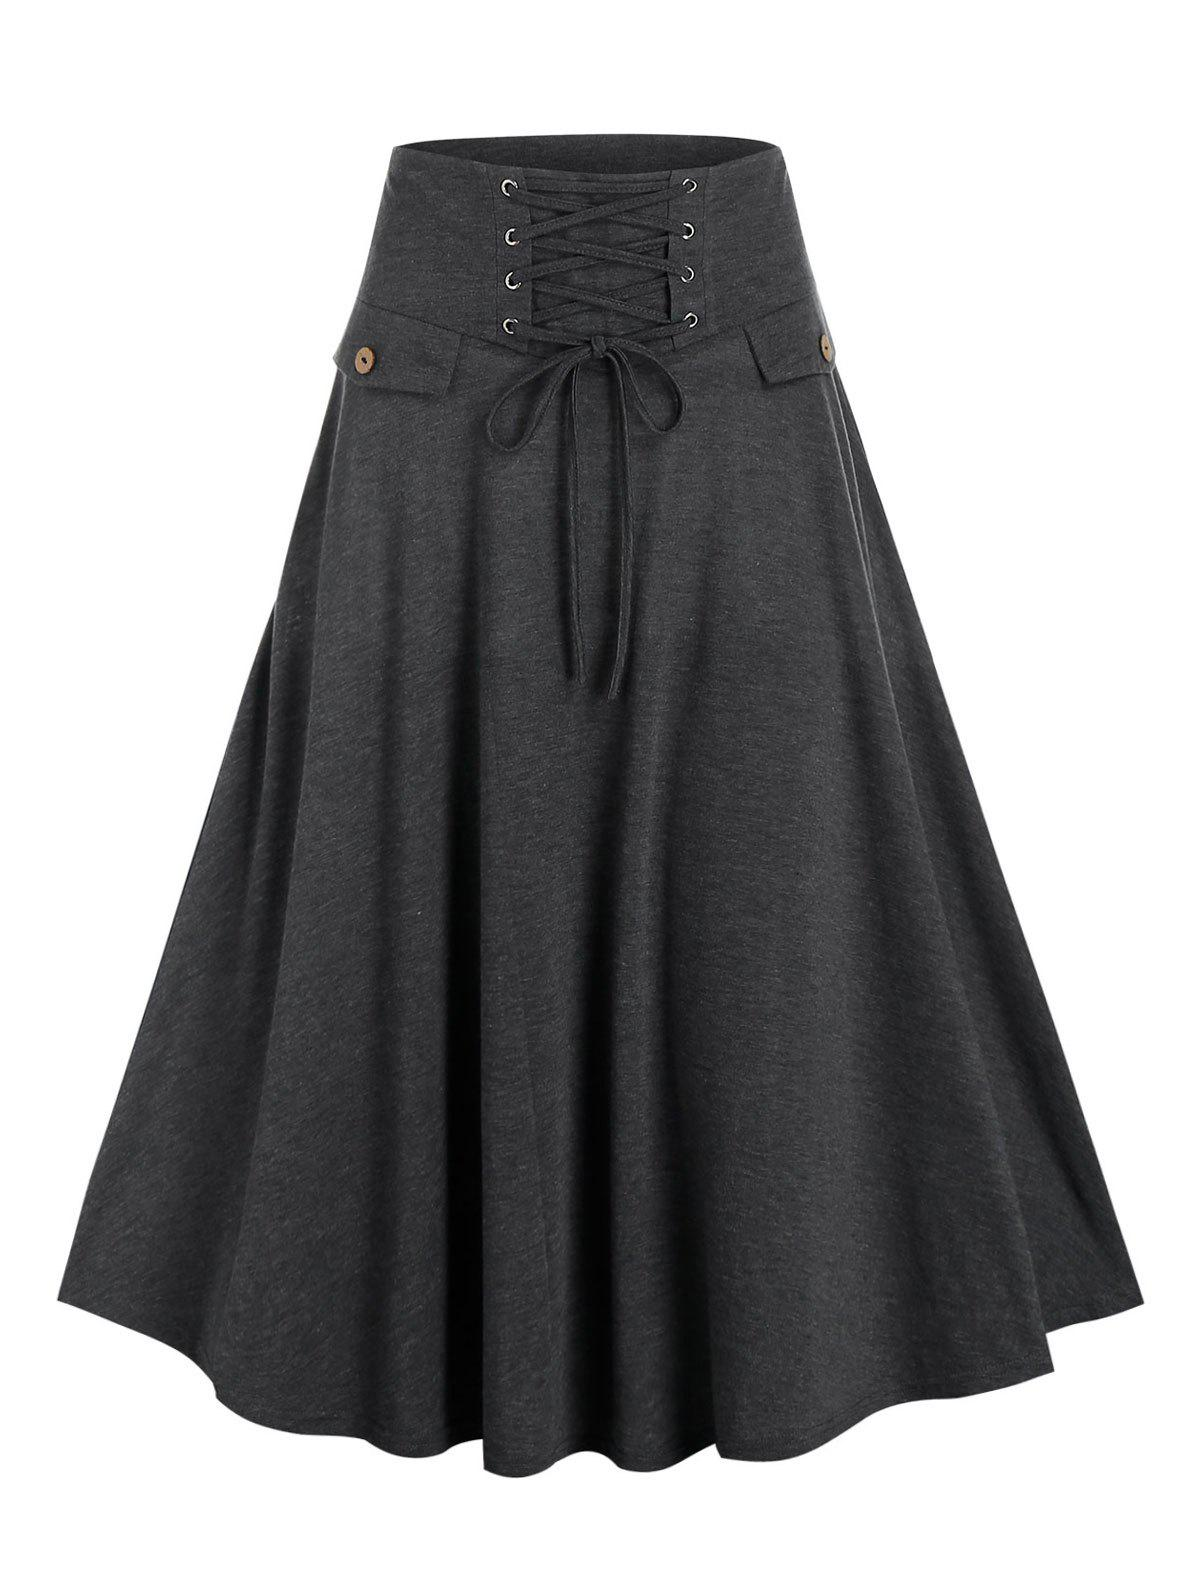 Lace-up Front Heathered Midi Skirt - ASH GRAY M